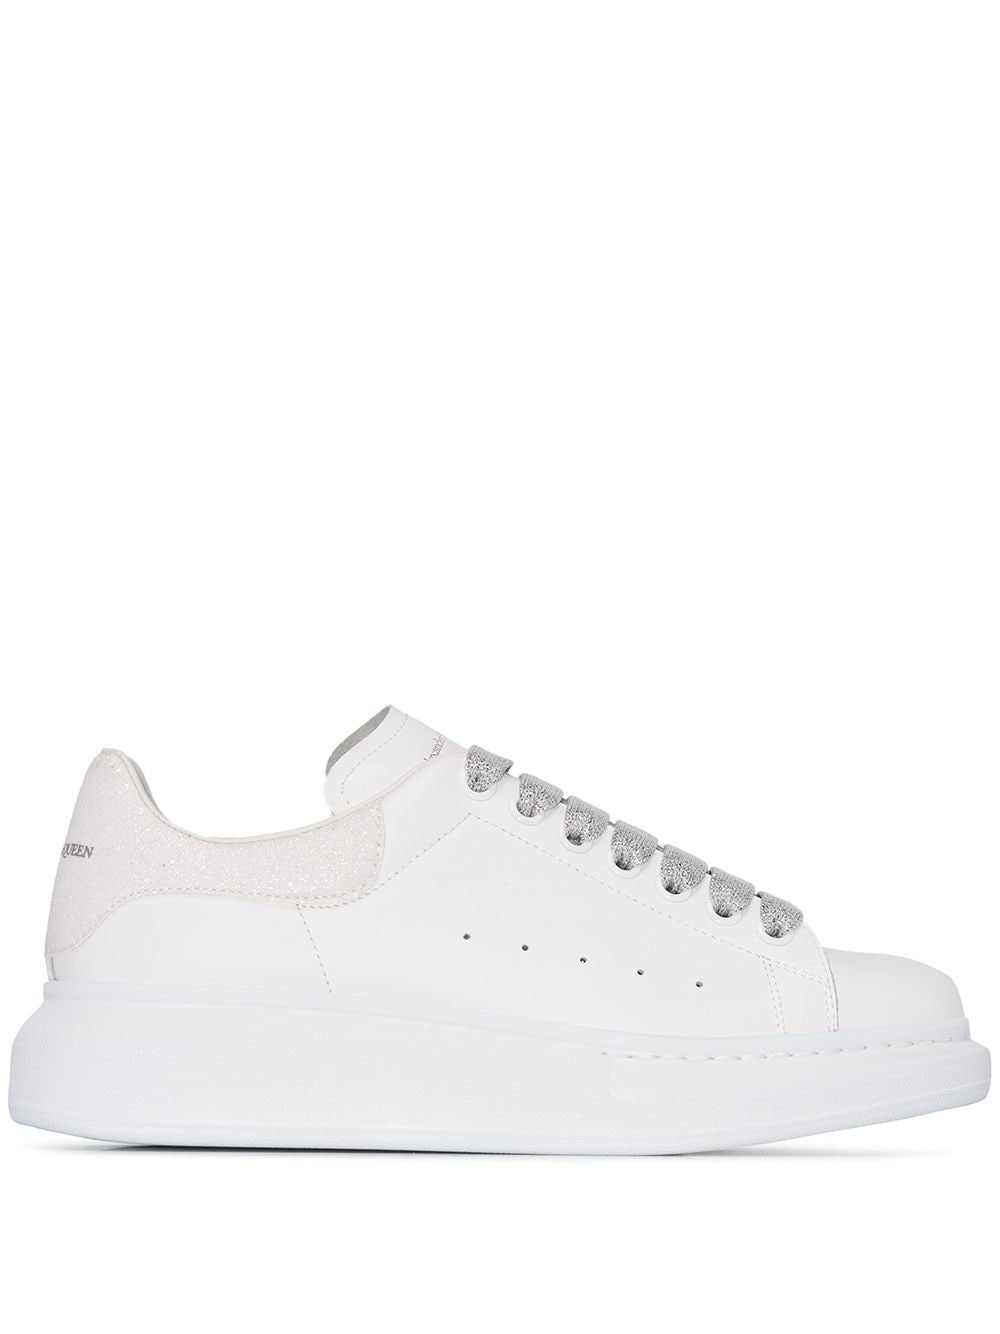 Women's White Oversize Sneakers With